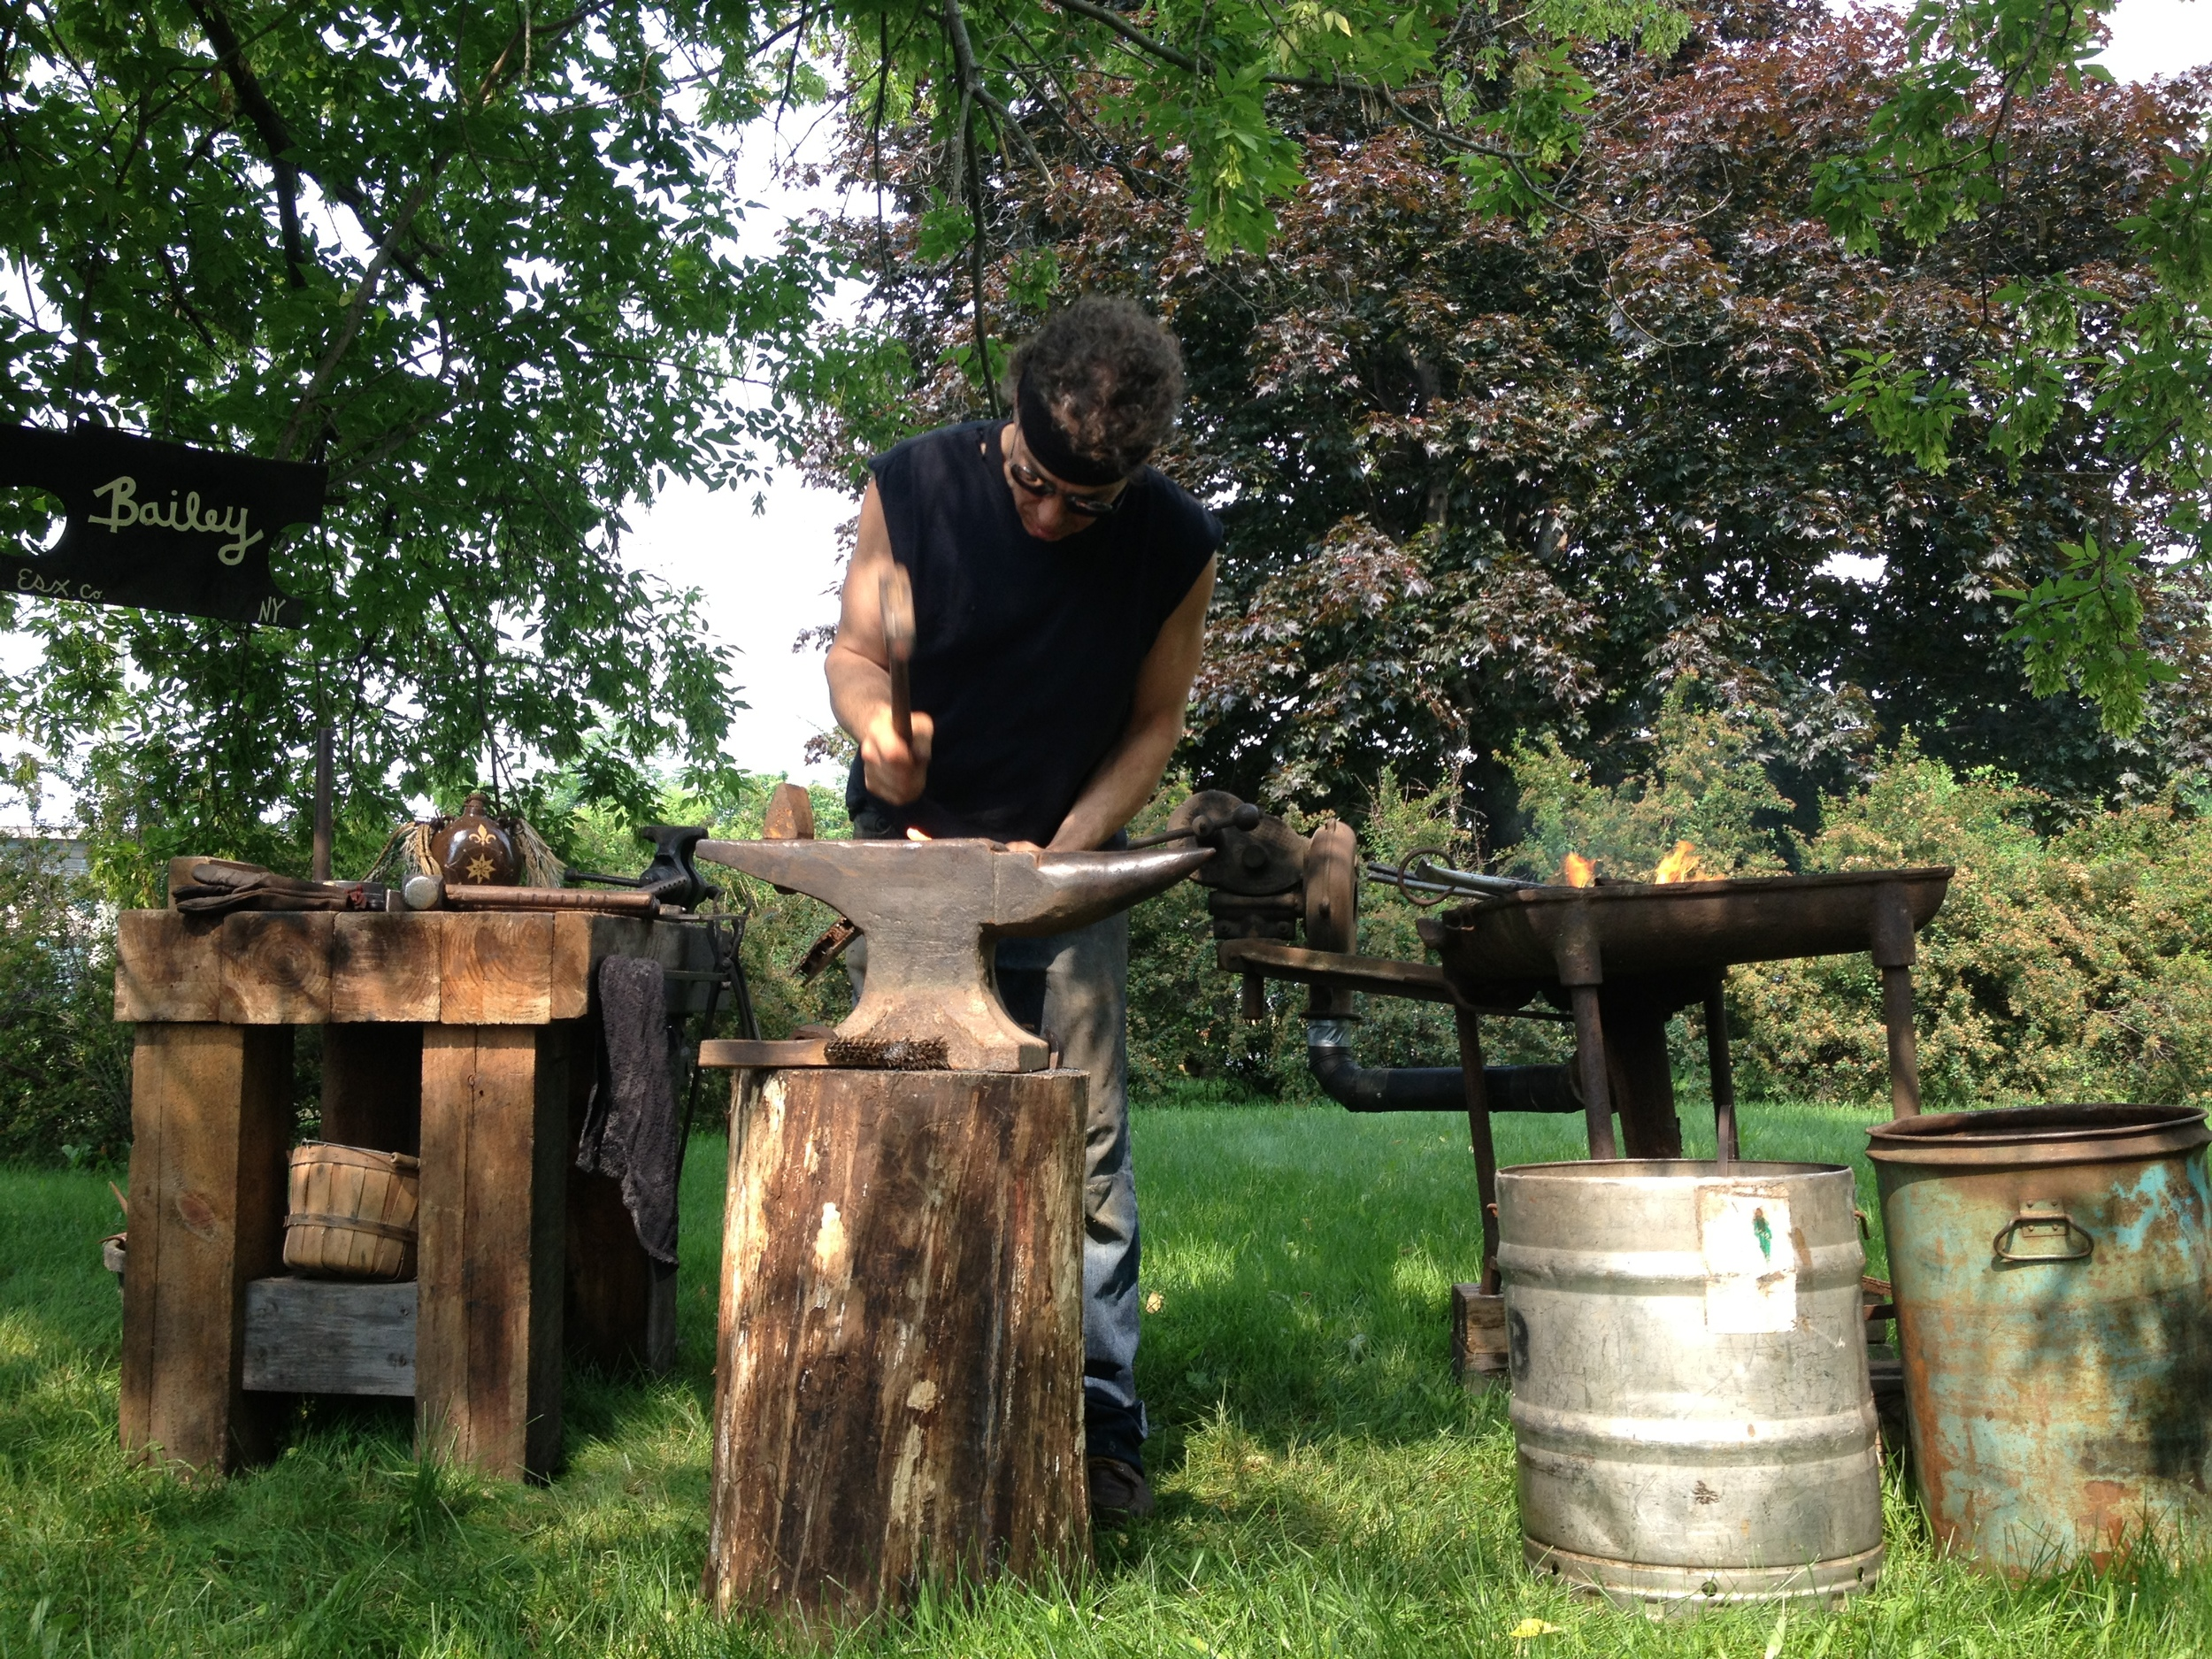 While making a knife blade from an old file, Russ enlightened us on the relative merits of different kinds of steel and iron, the ease of setting up your own small forge on a farm, and the vast superiority of old tools. A fascinating way to end a fascinating weekend.